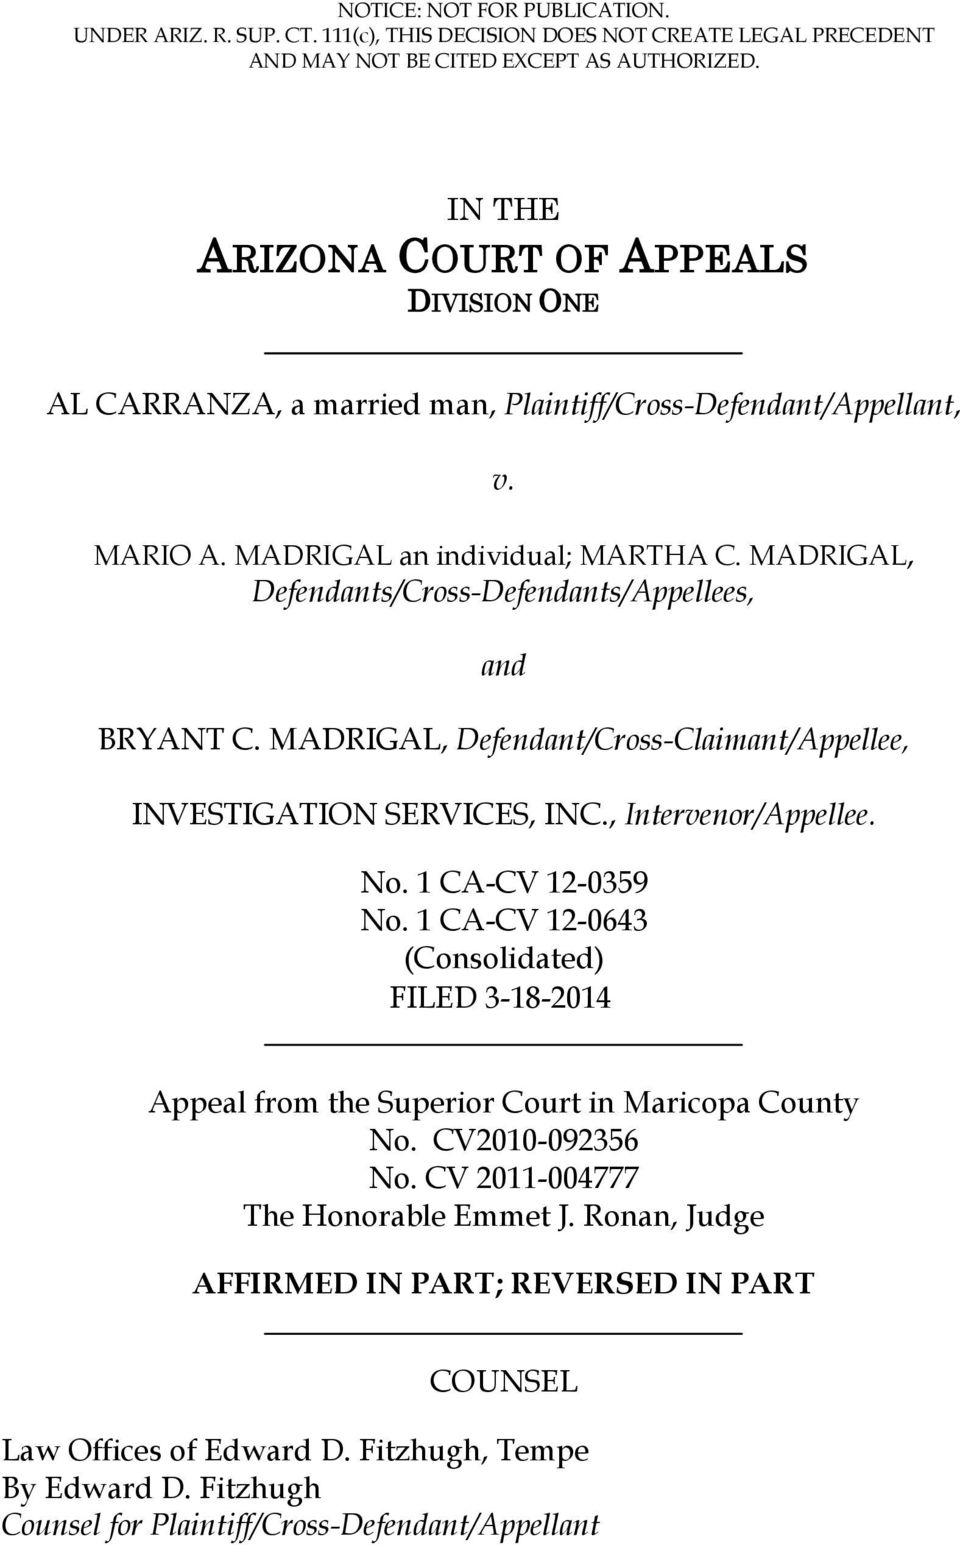 MADRIGAL, Defendants/Cross-Defendants/Appellees, and BRYANT C. MADRIGAL, Defendant/Cross-Claimant/Appellee, INVESTIGATION SERVICES, INC., Intervenor/Appellee. No. 1 CA-CV 12-0359 No.